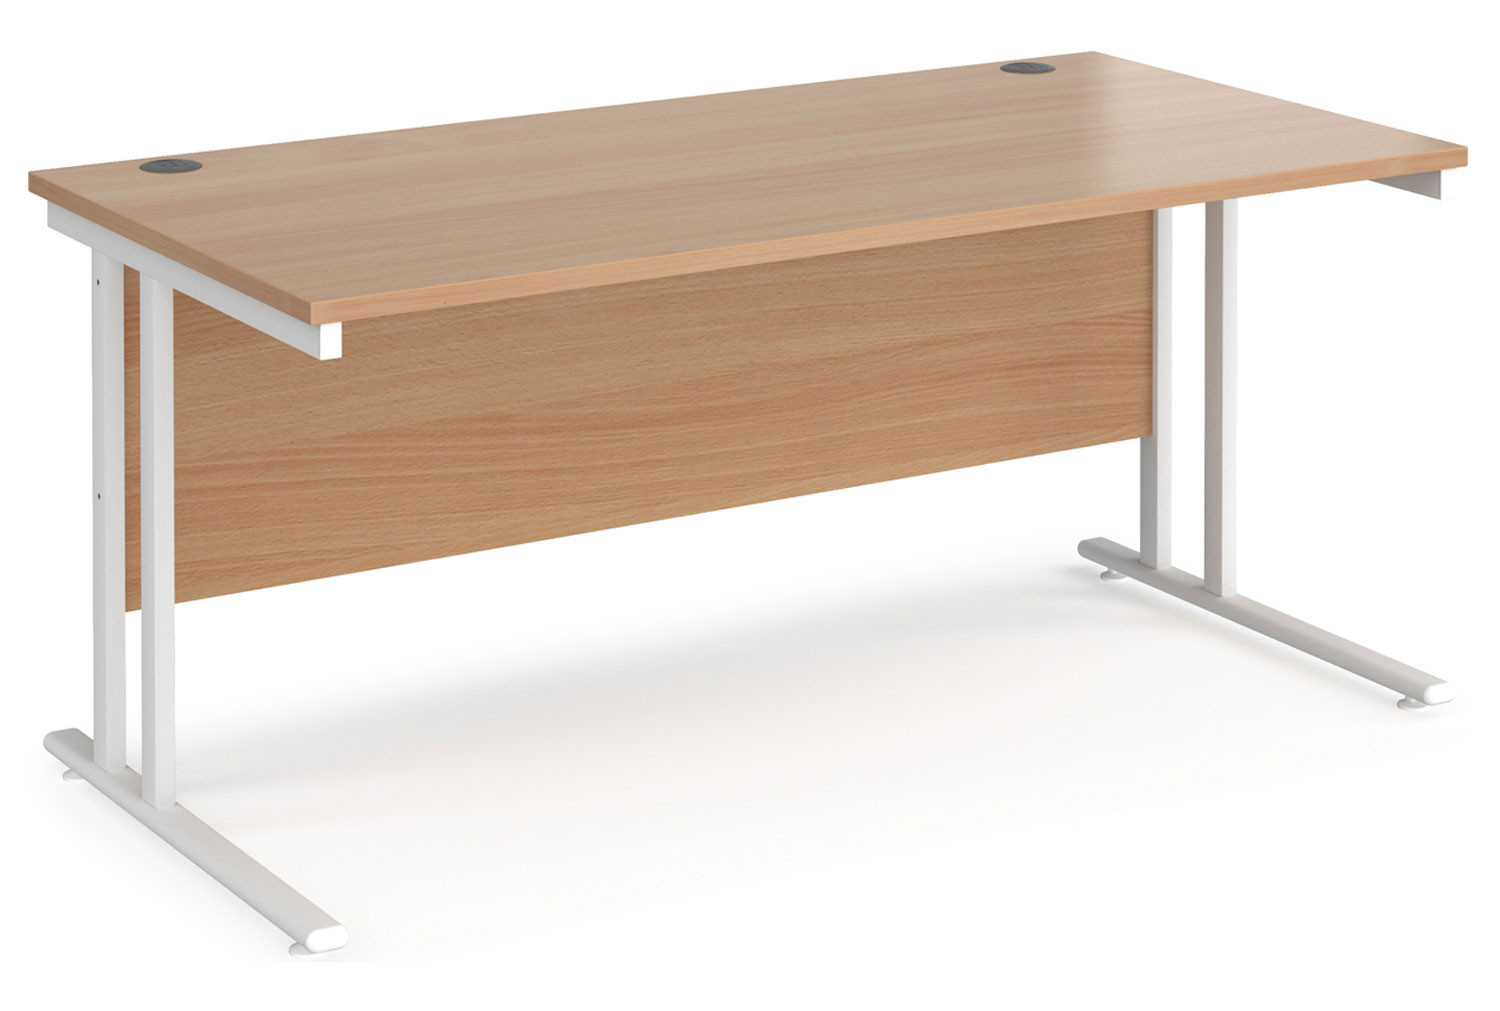 Value Line Deluxe C-Leg Rectangular Desk (White Legs)